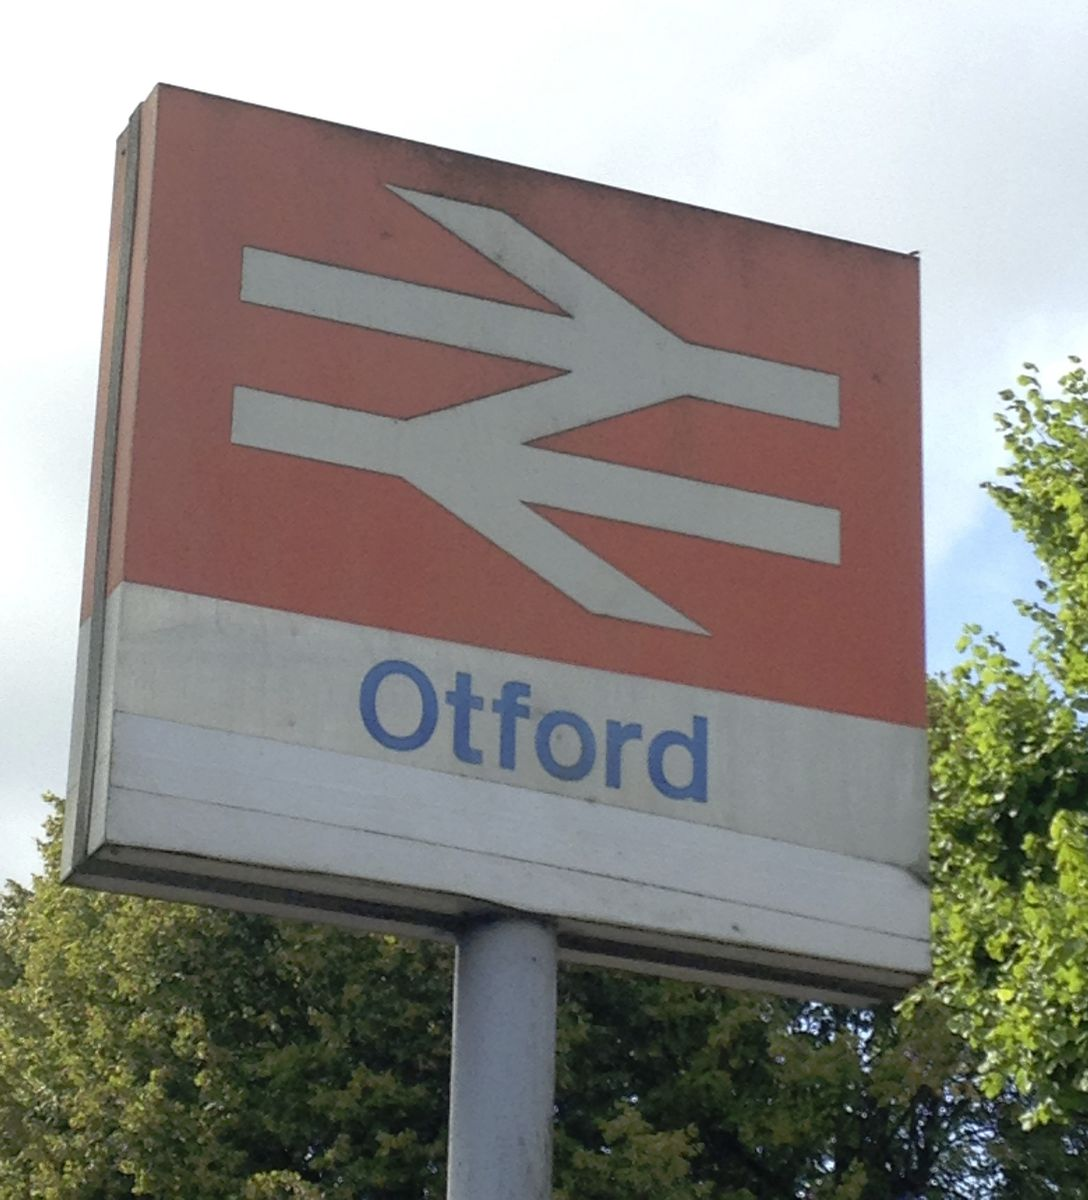 Standard British UK Rail sign outside my home station.